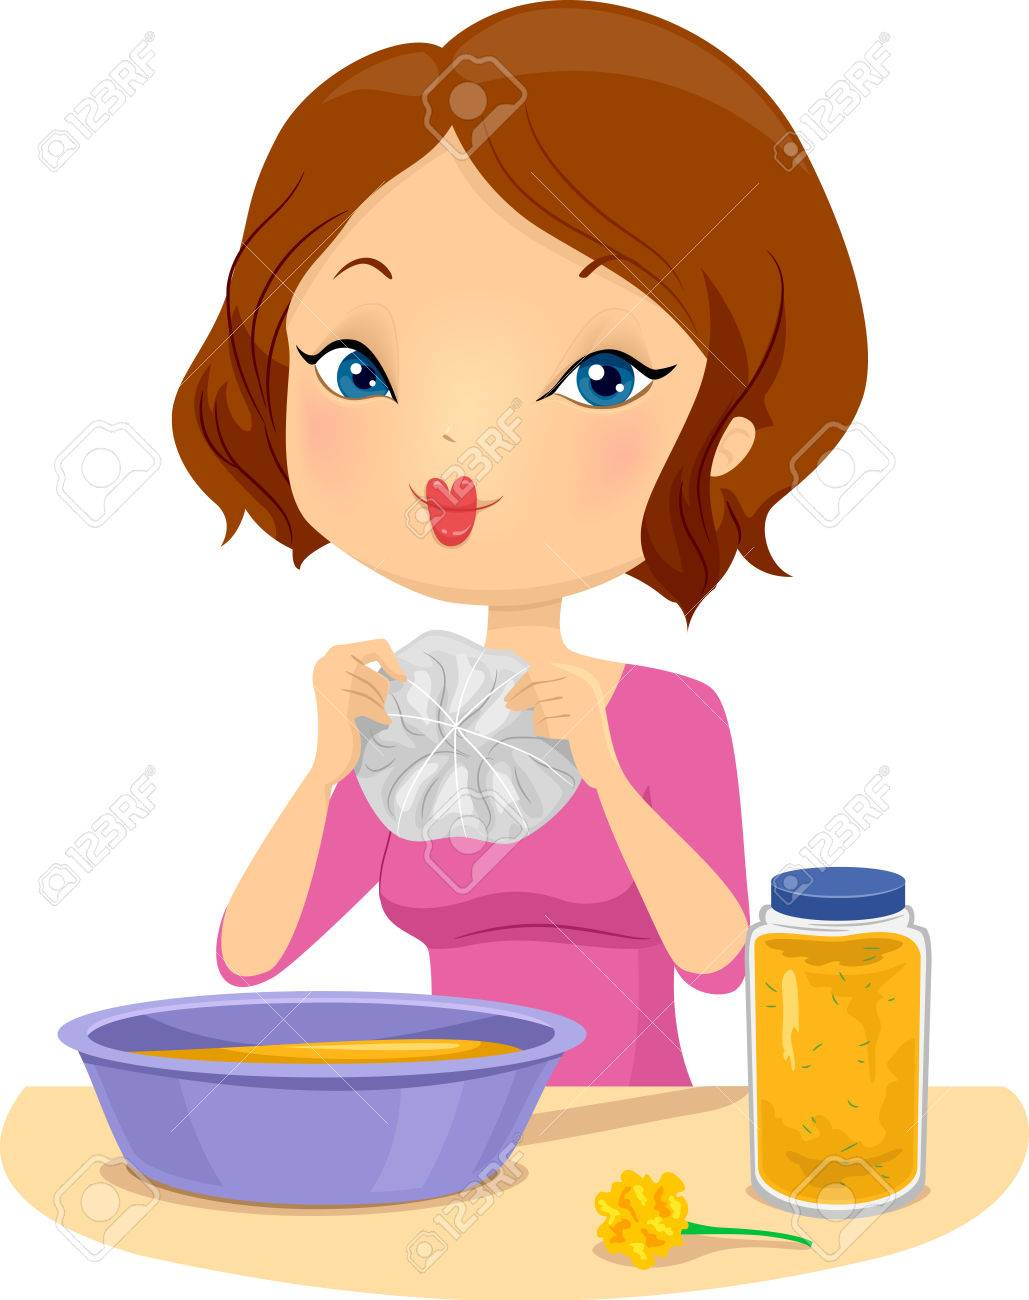 06496e9f Illustration of a Girl Making a Tie Dyed T-Shirt using Yellow Marigolds  Stock Illustration